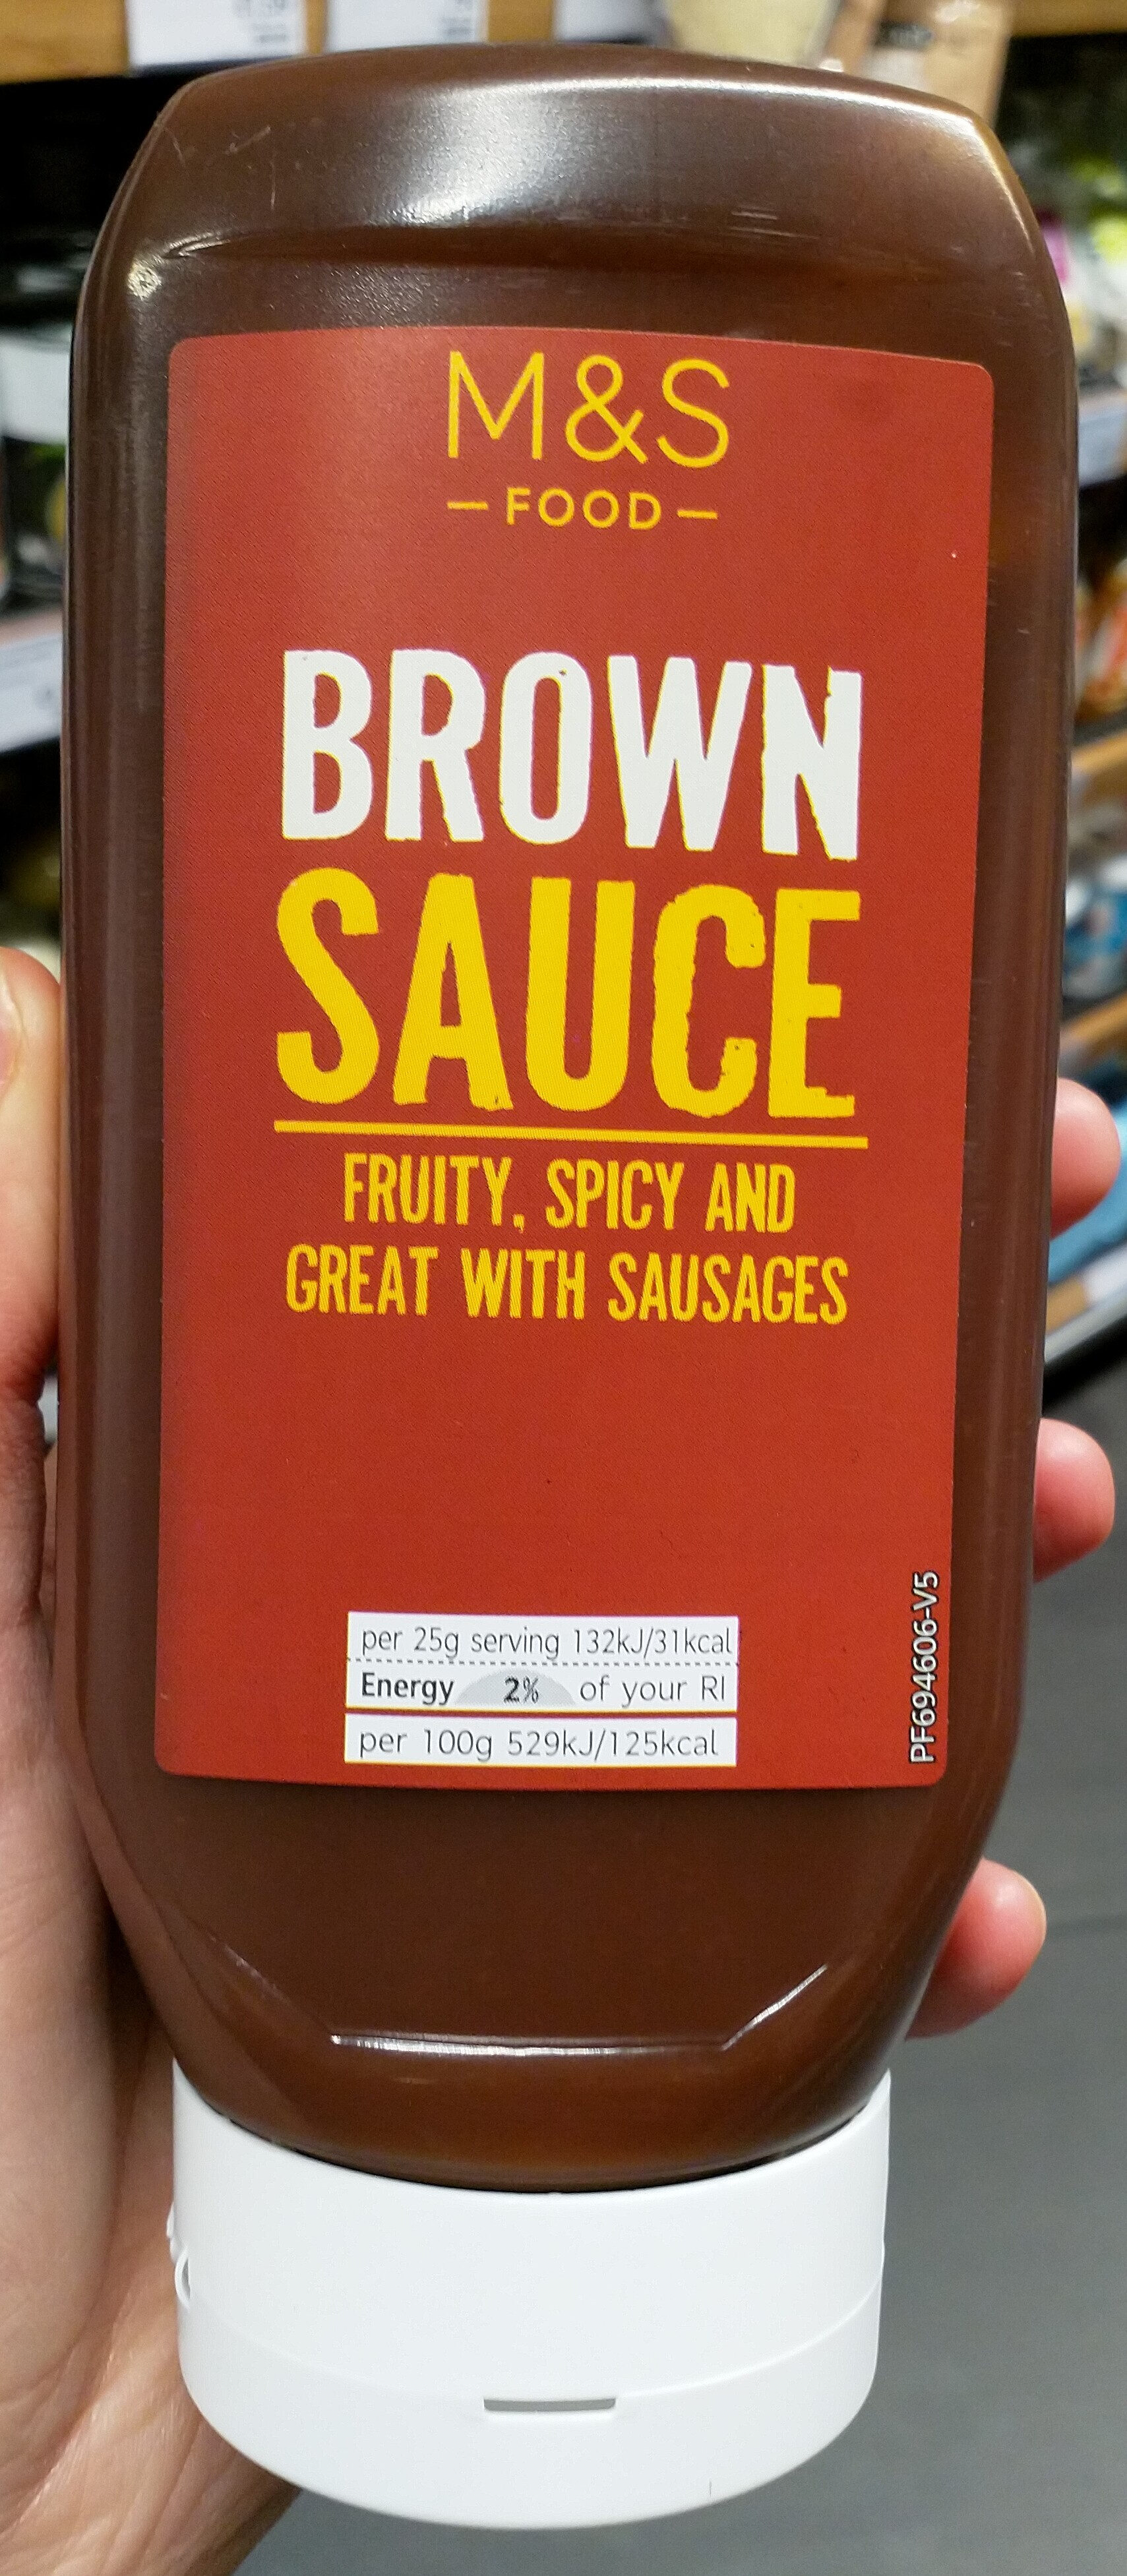 Brown Sauce - Product